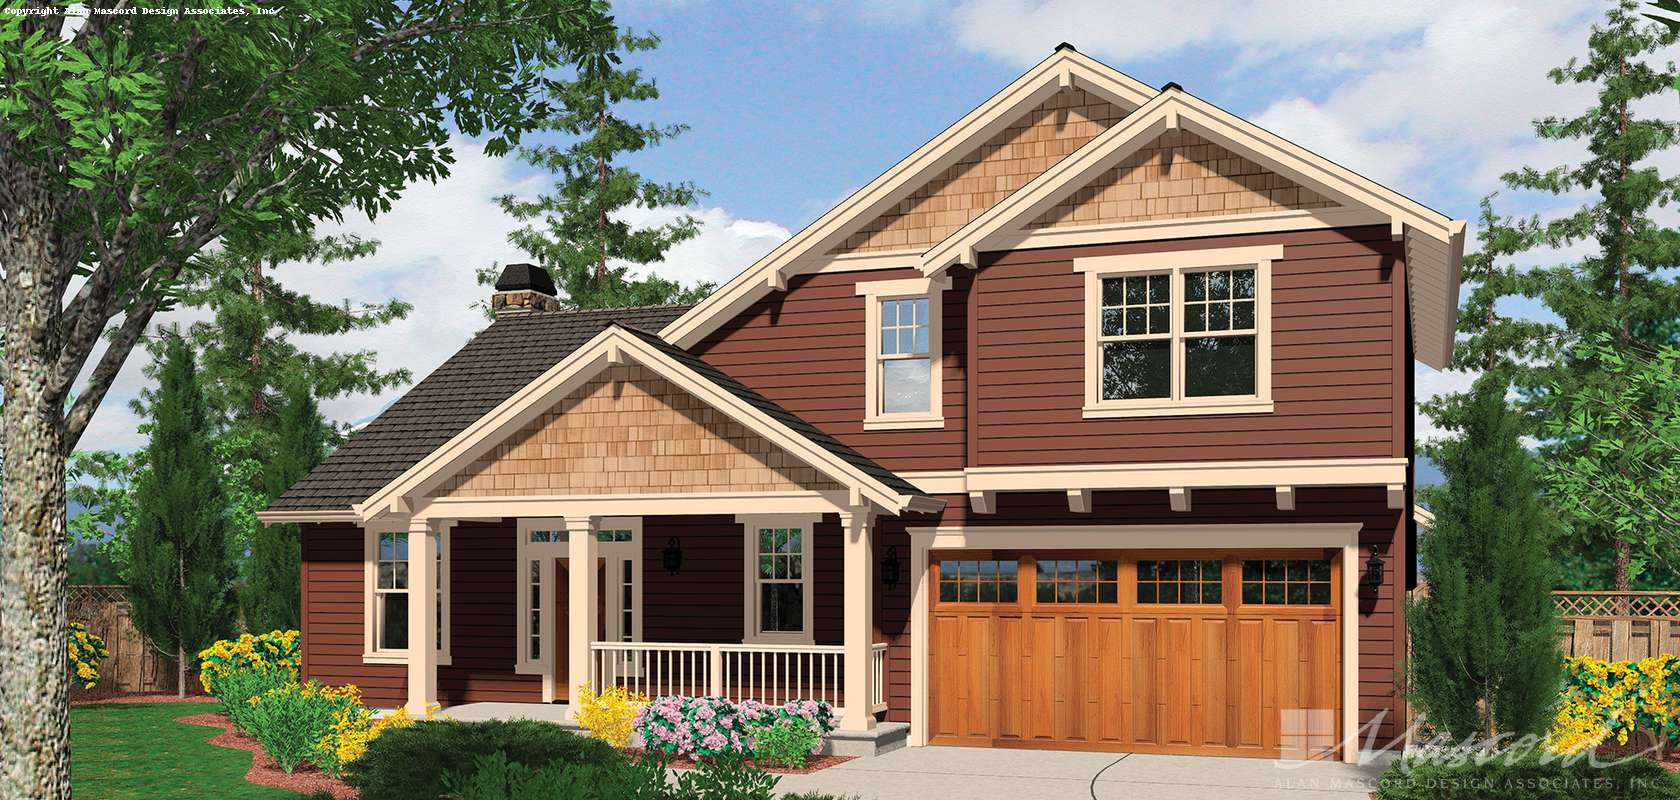 Mascord House Plan 22143: The Treynor